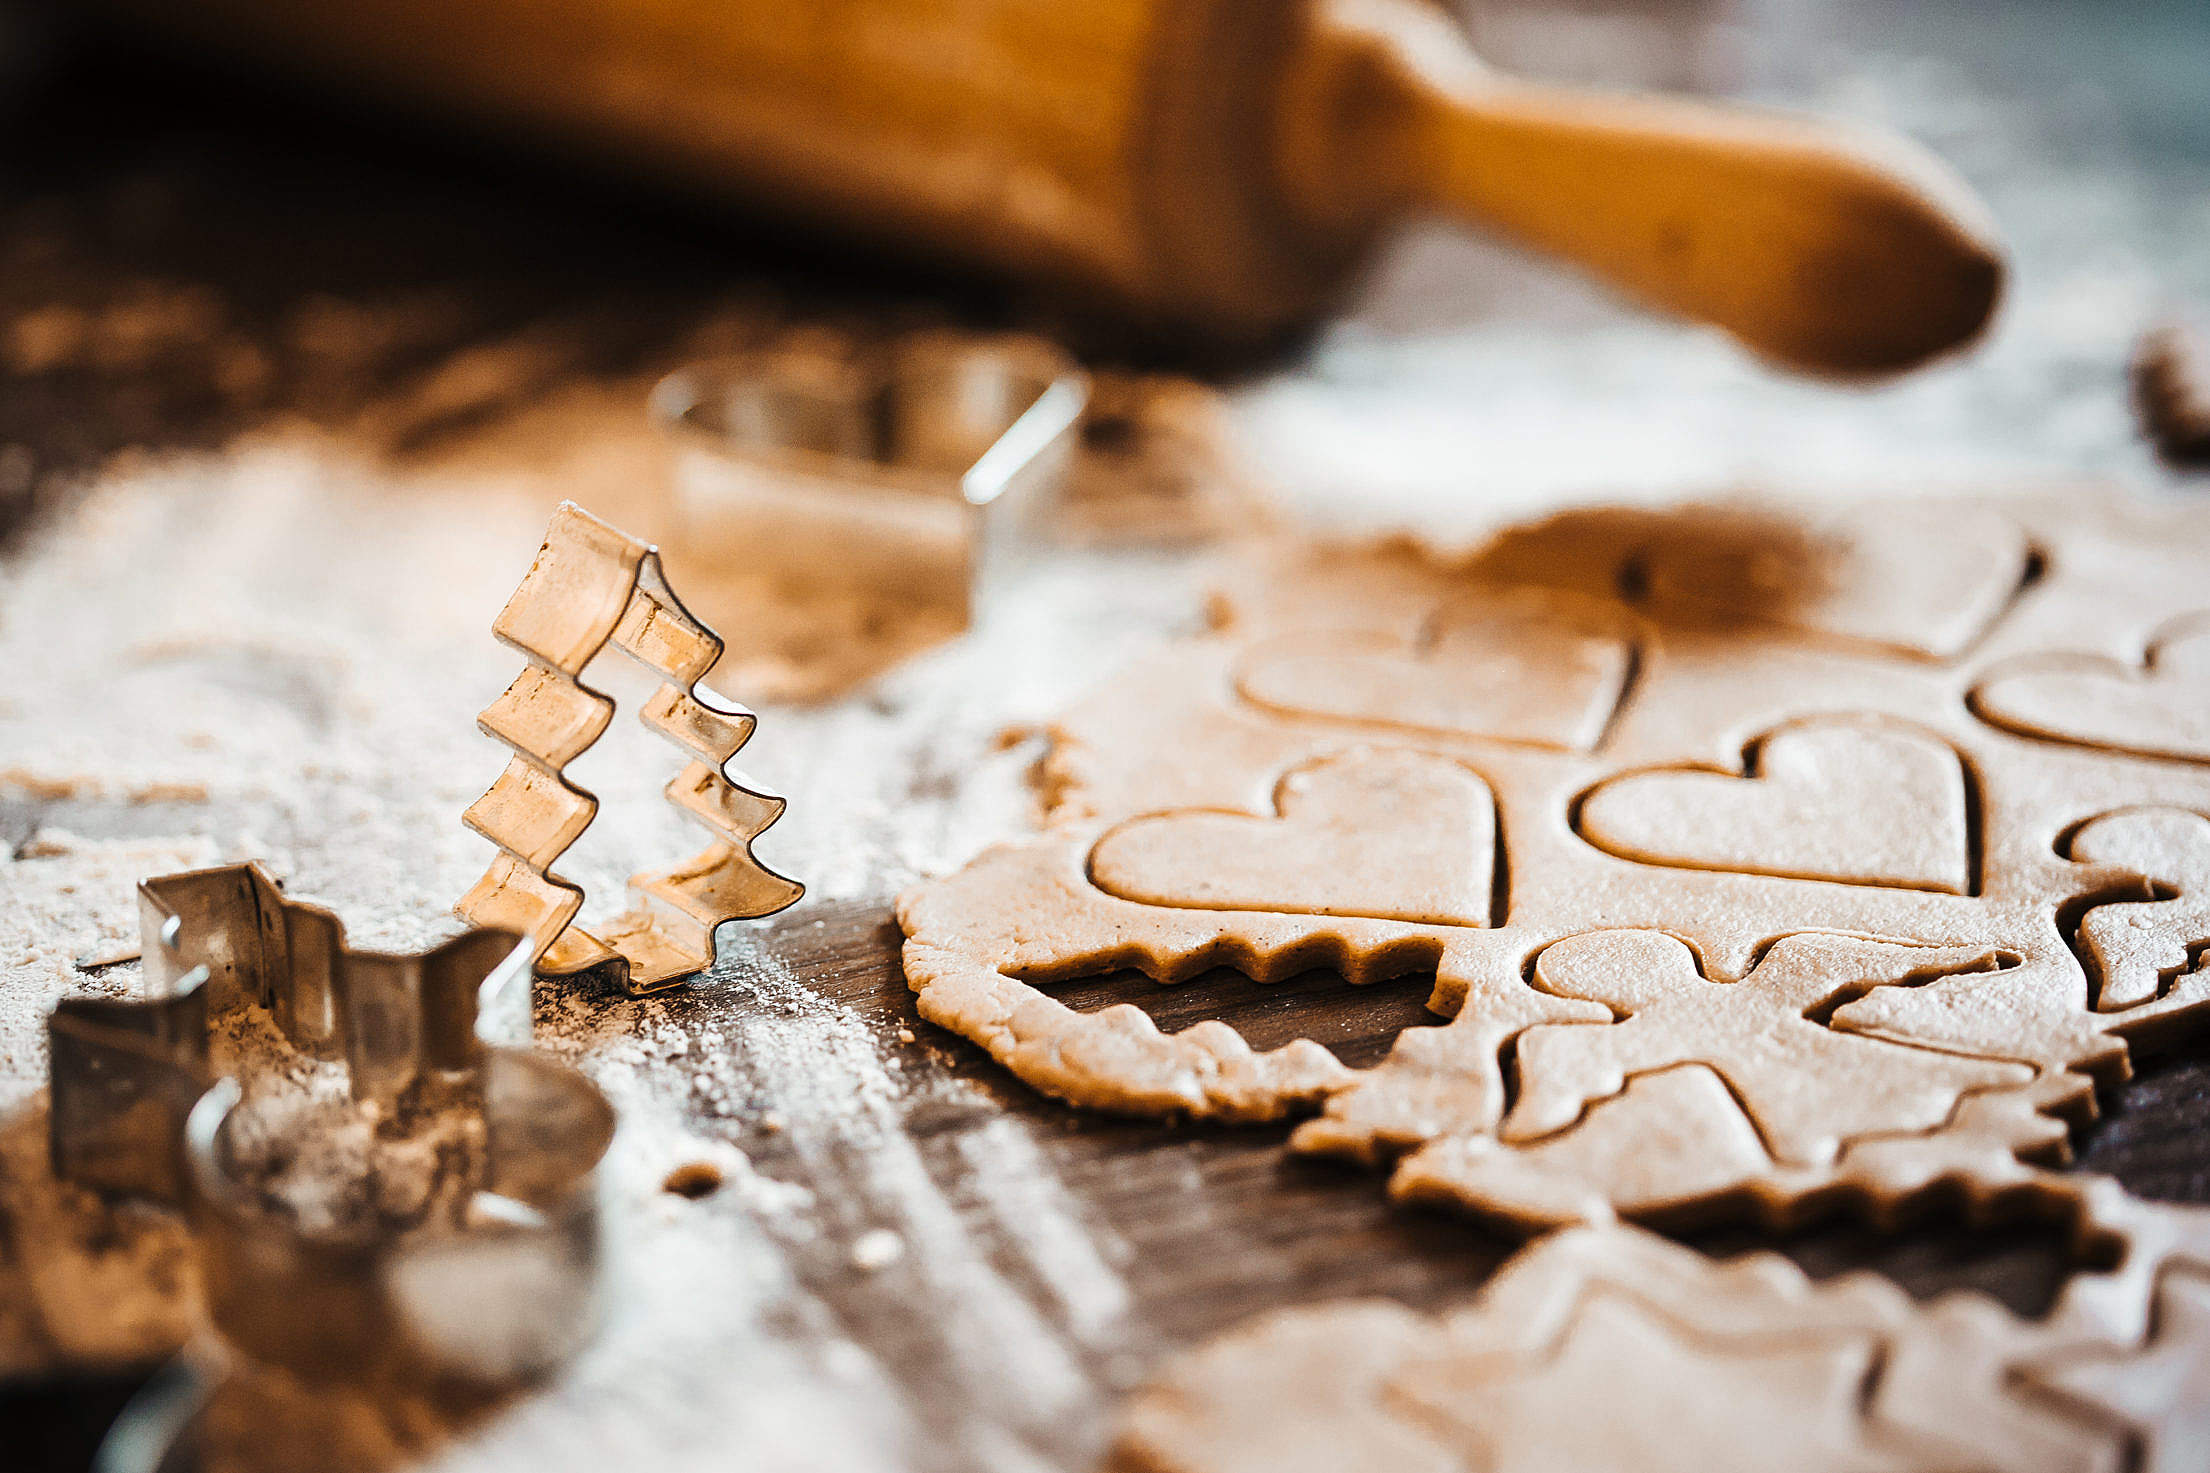 Preparing Christmas Sweets for Baking Free Stock Photo